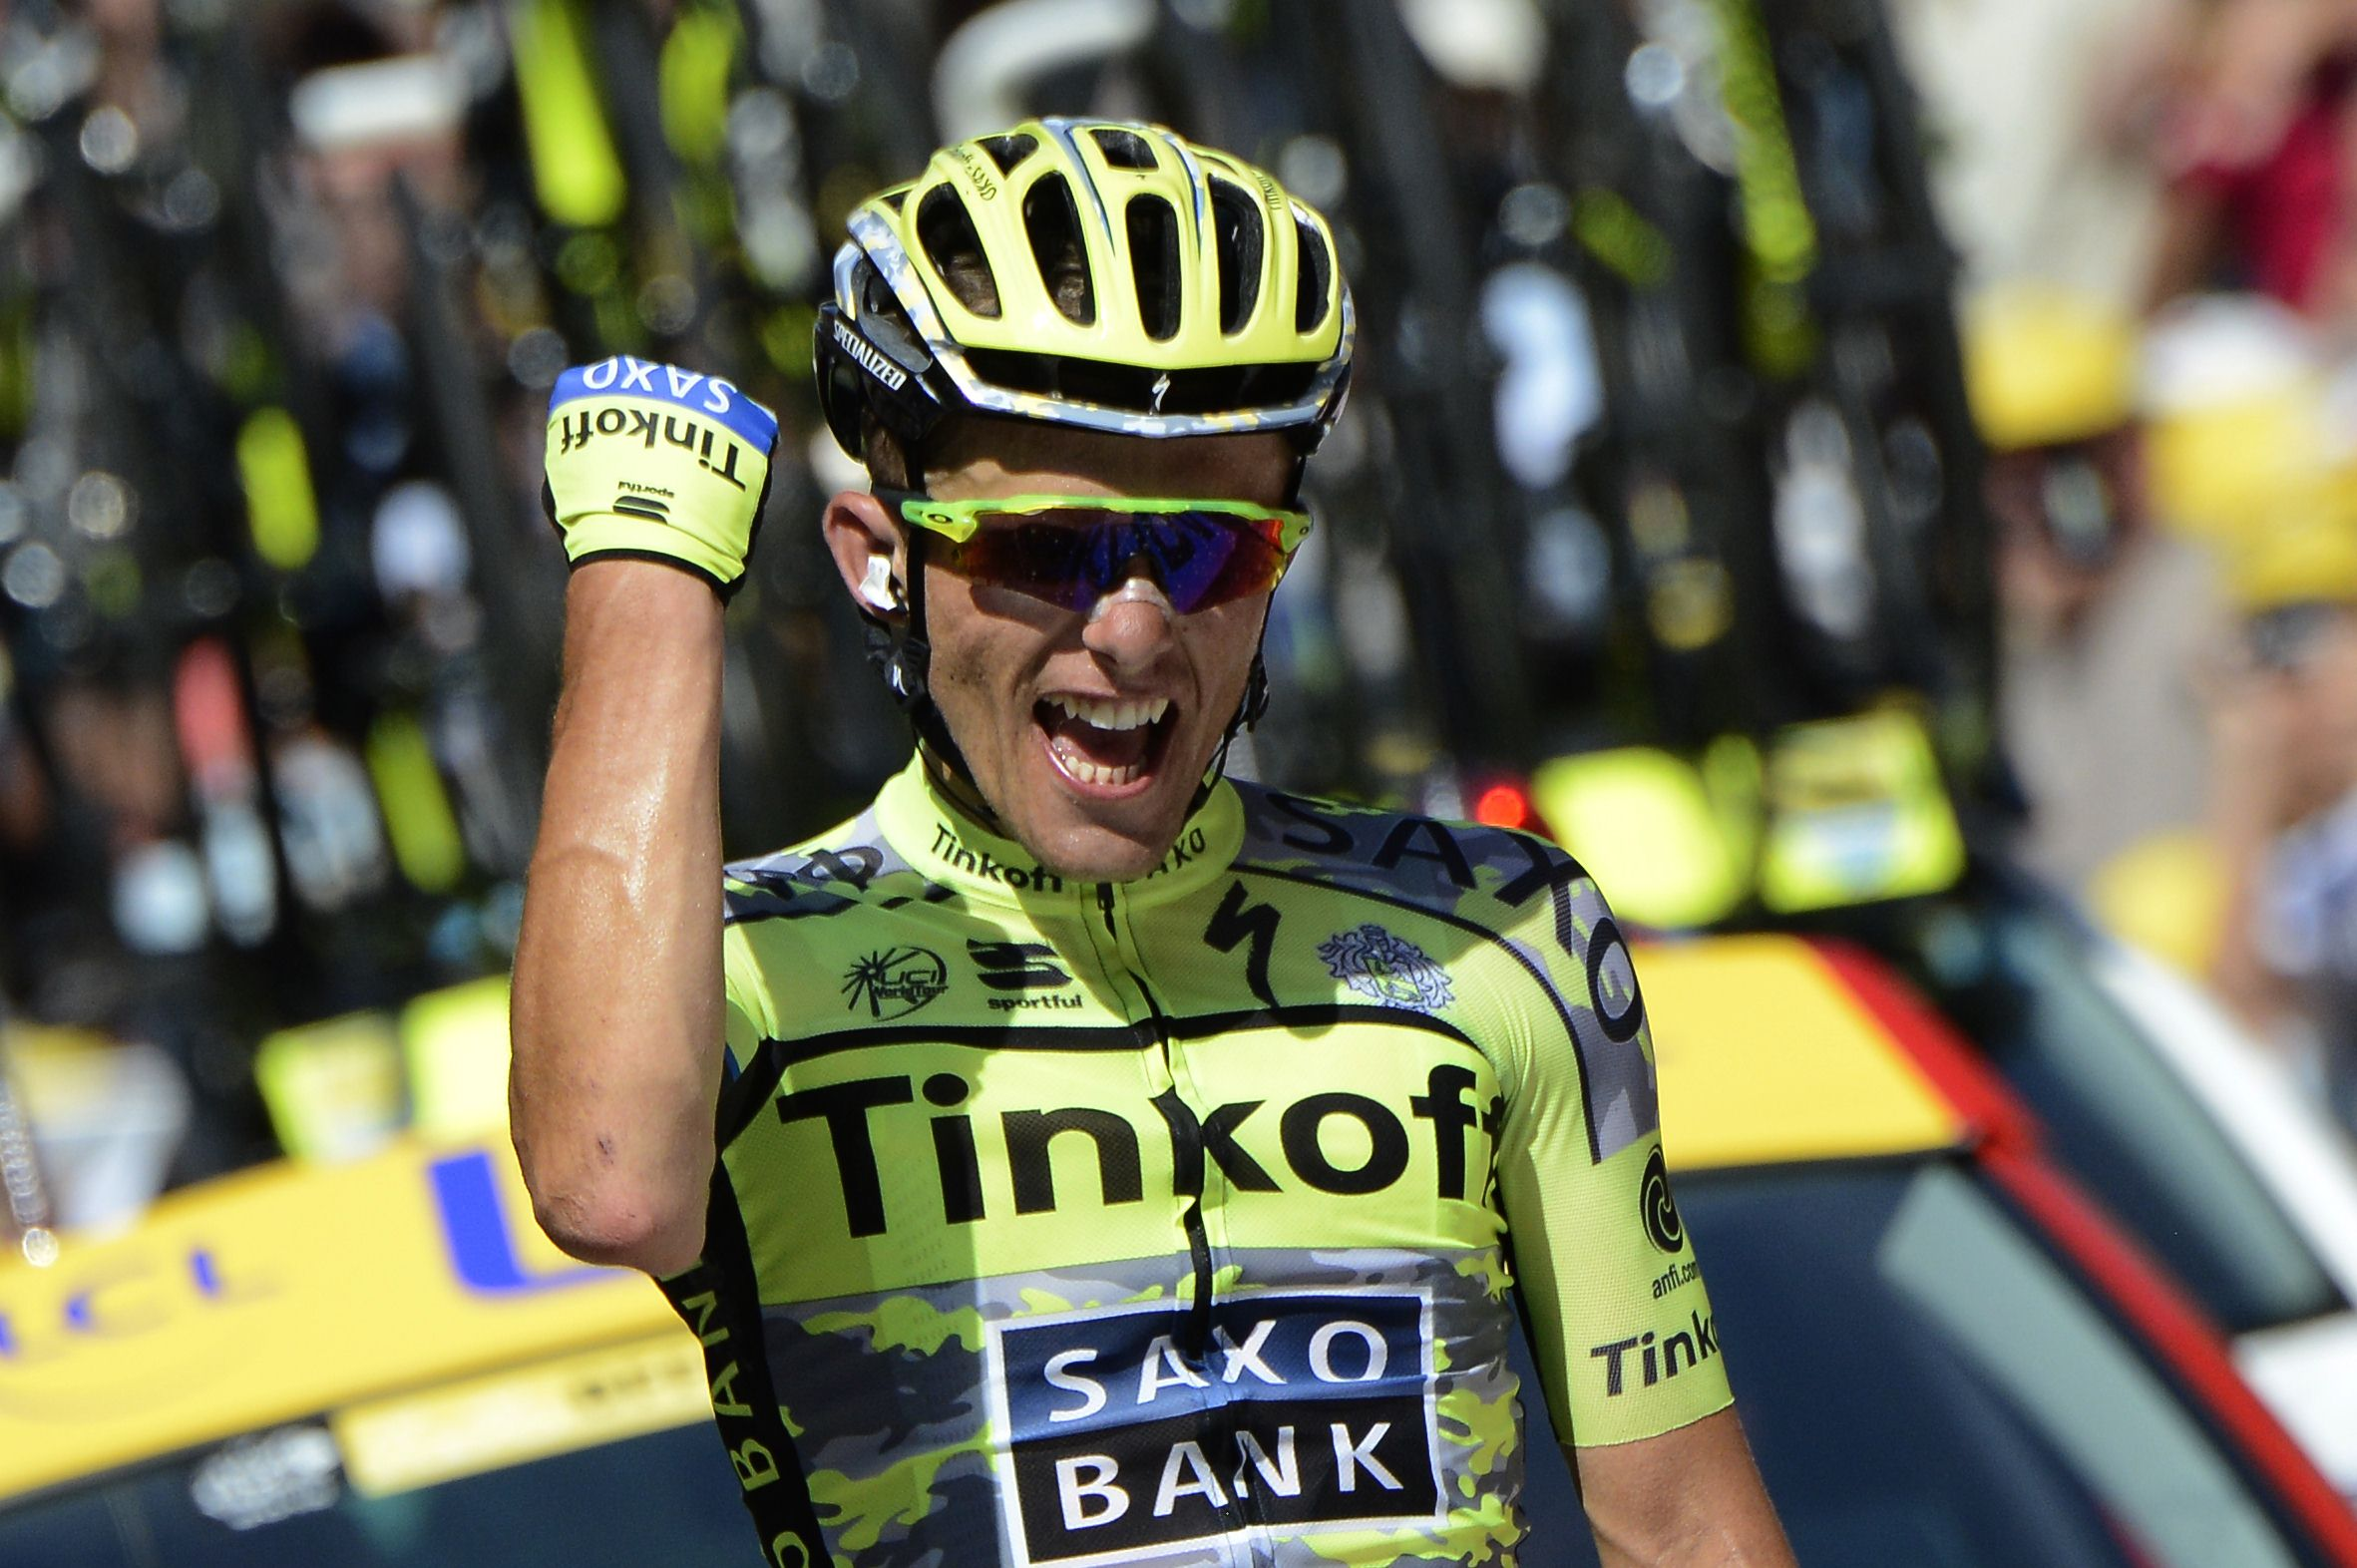 Poland's Rafal Majka celebrates as he crosses the finish line at the end of the 188 km eleventh stage of the 102nd edition of the Tour de France cycling race on July 15, 2015, between Pau and Cauterets, southwestern France.  AFP PHOTO / JEFF PACHOUD